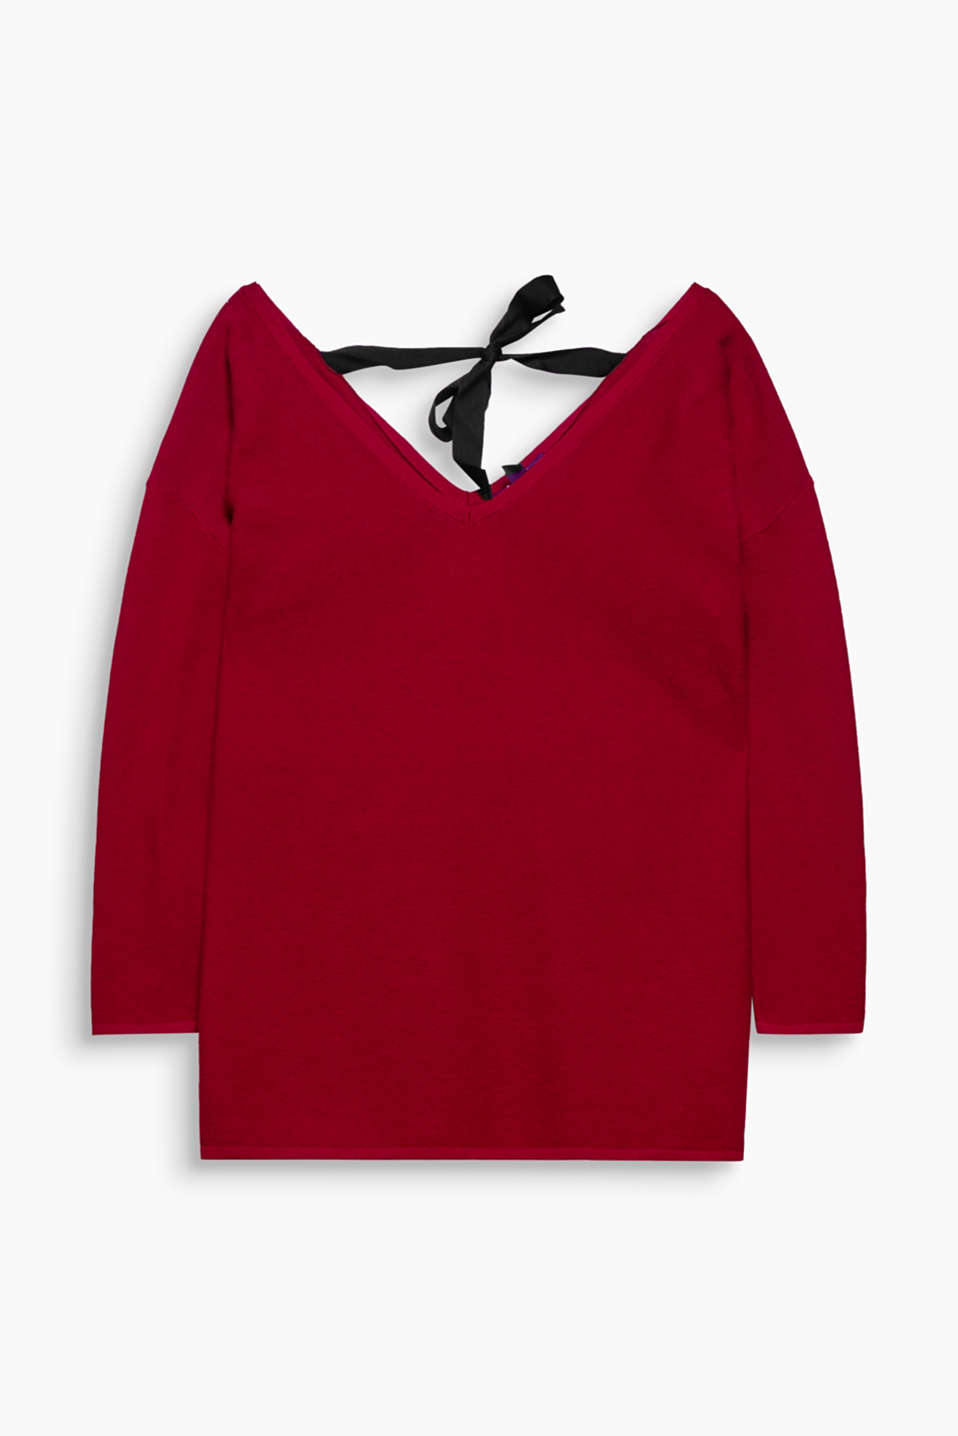 Jumper in a feminine look with dropped shoulders, a wide V-neckline and 3/4-length sleeves